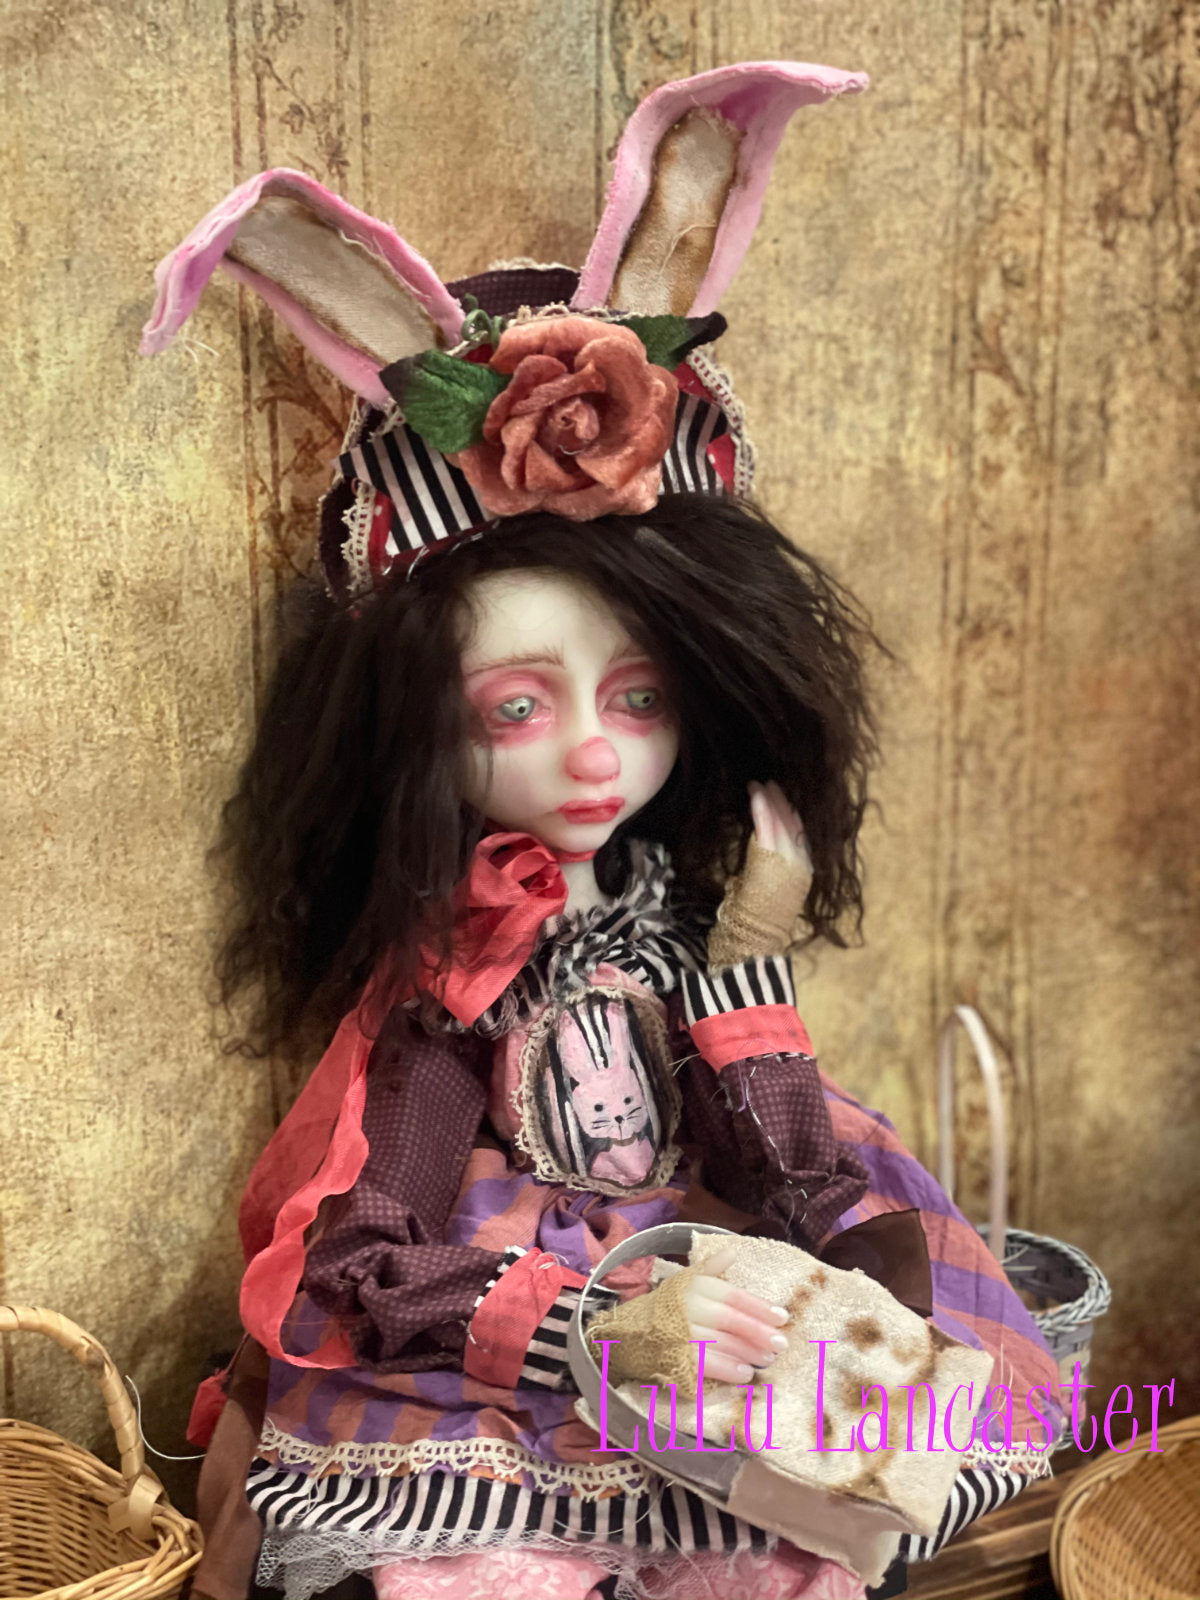 Sad Millie Bunny Girl Original LuLu Lancaster Art Doll